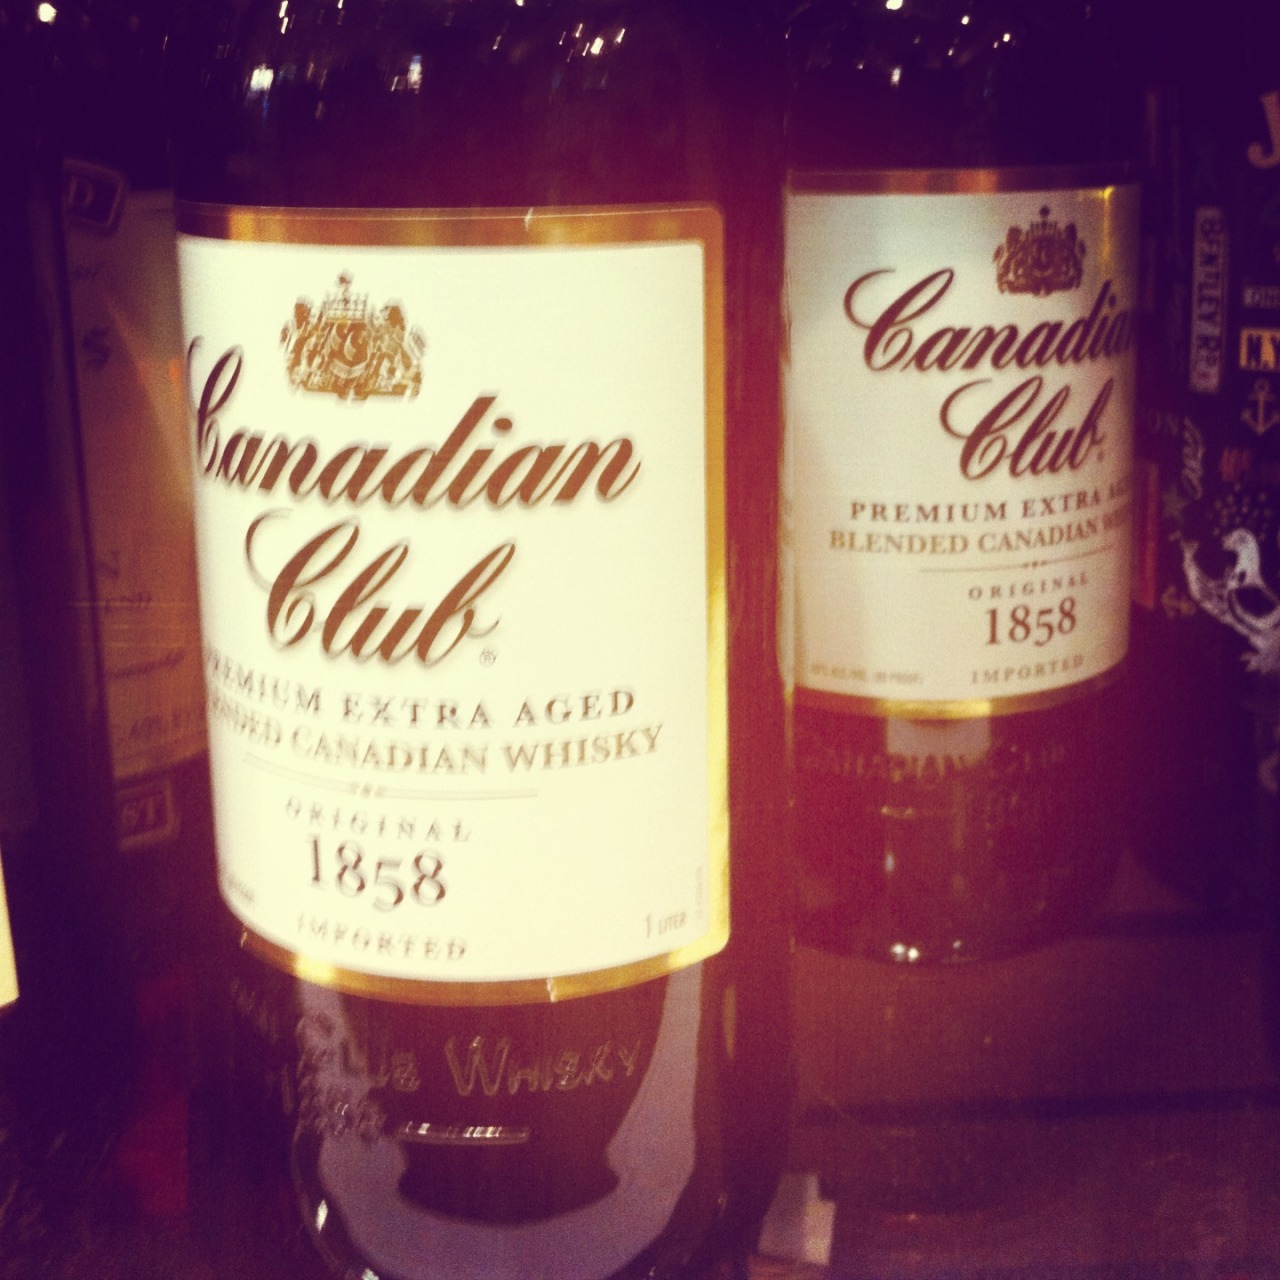 Canadian Club. The kind they drink in Mad Men.